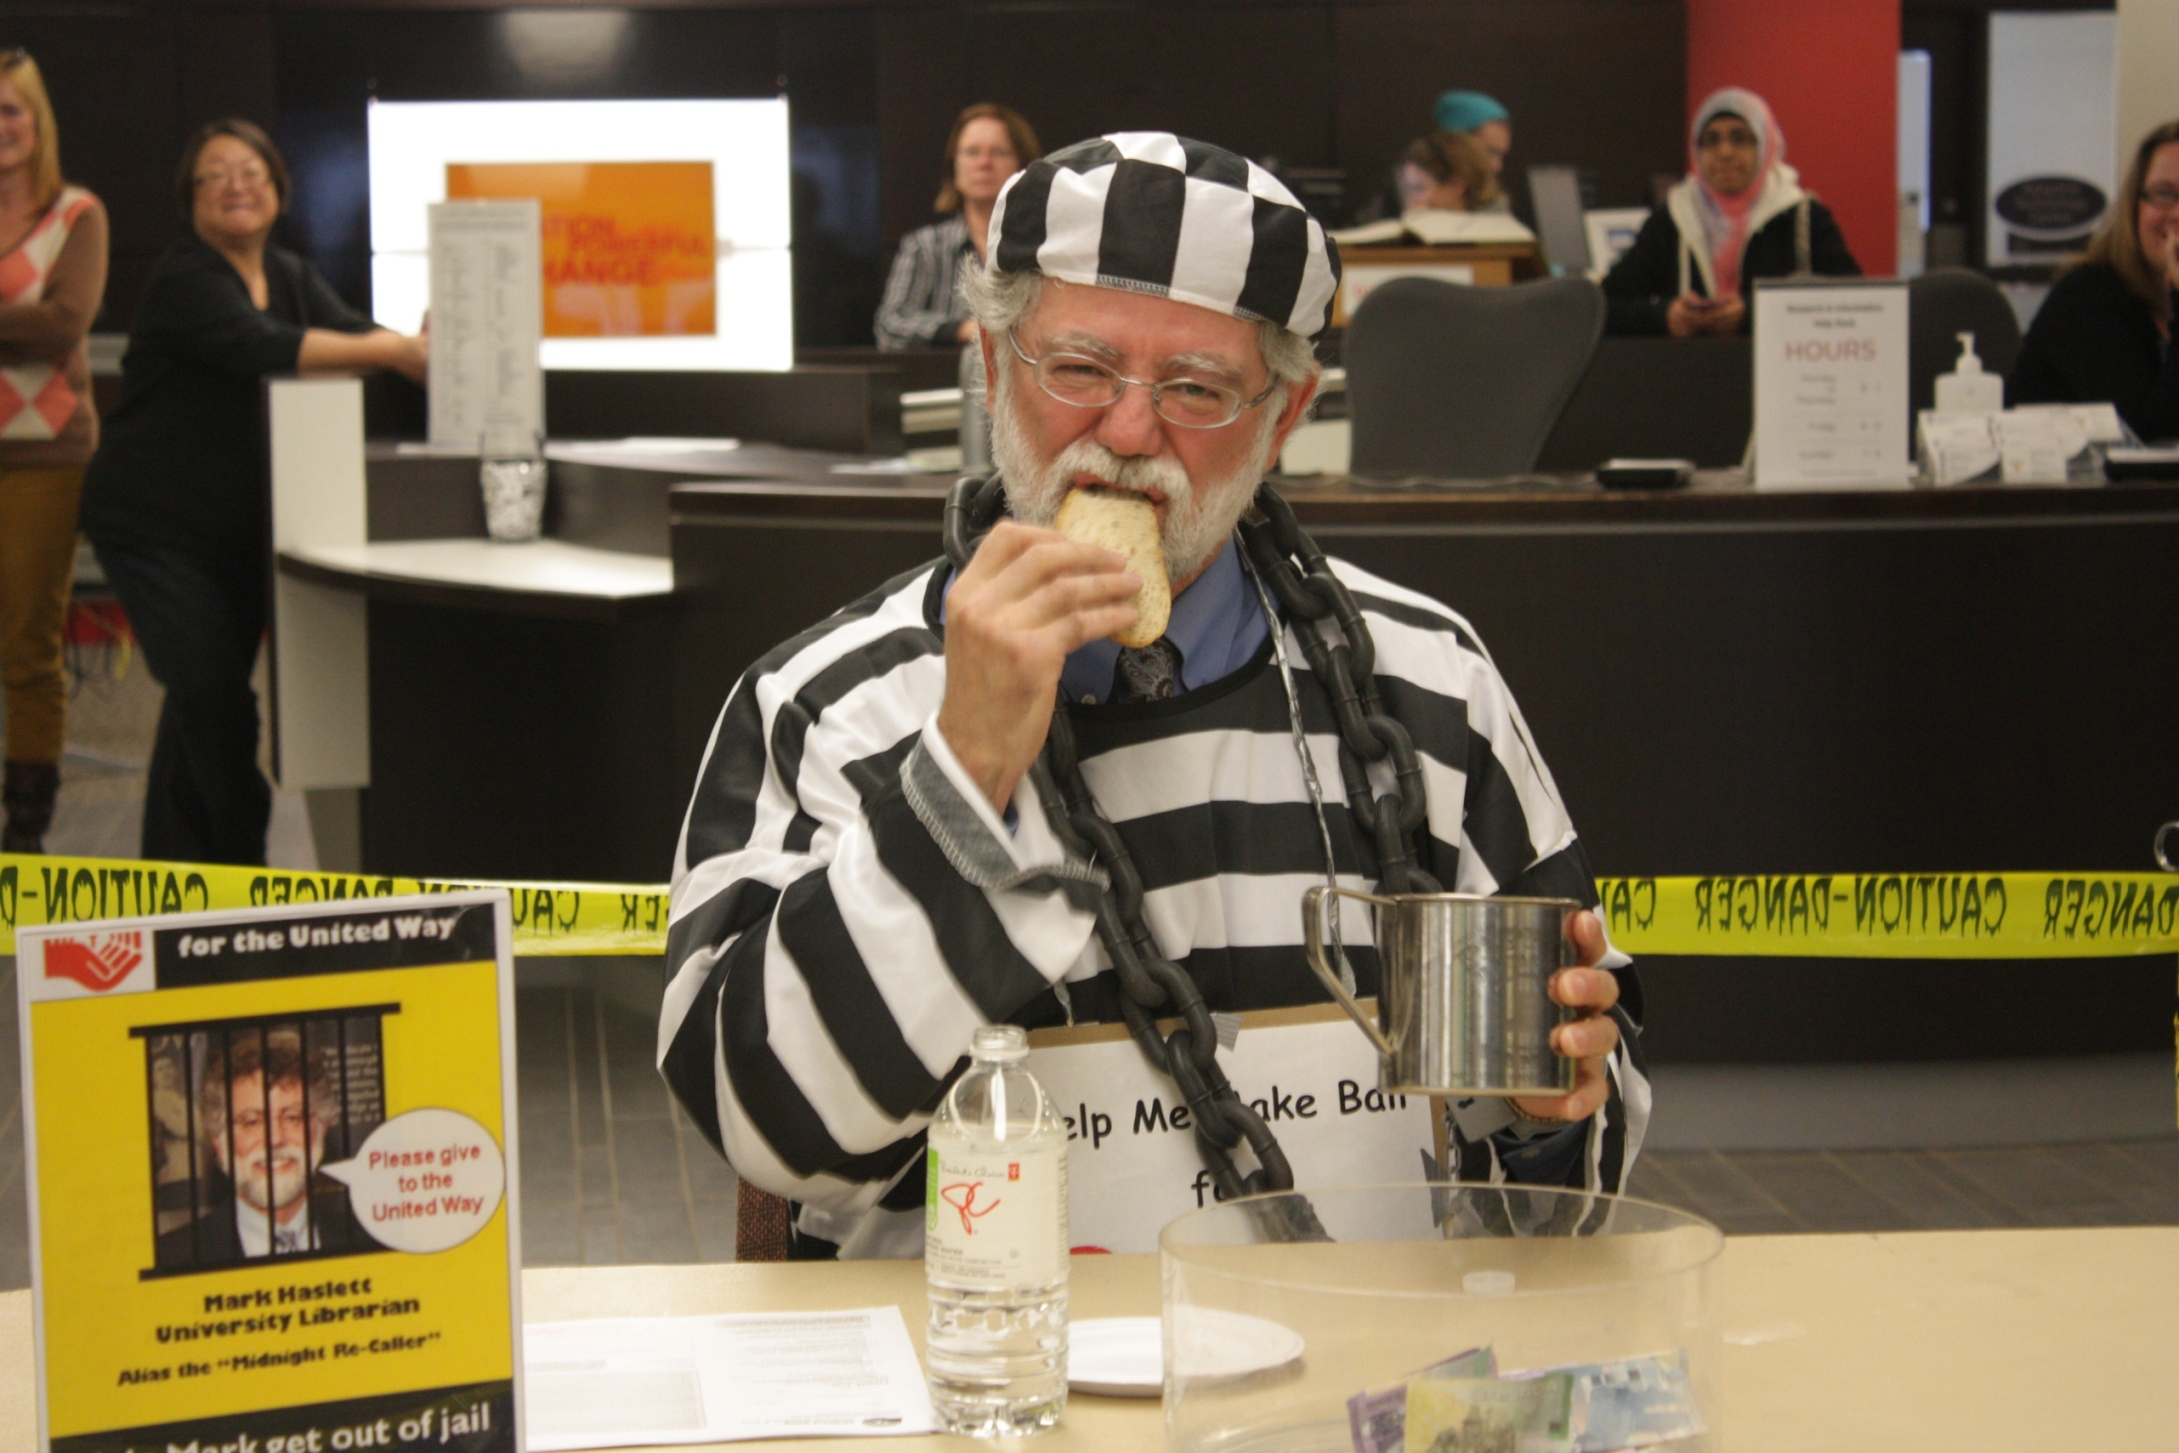 Mark Haslett is arrested for the United Way